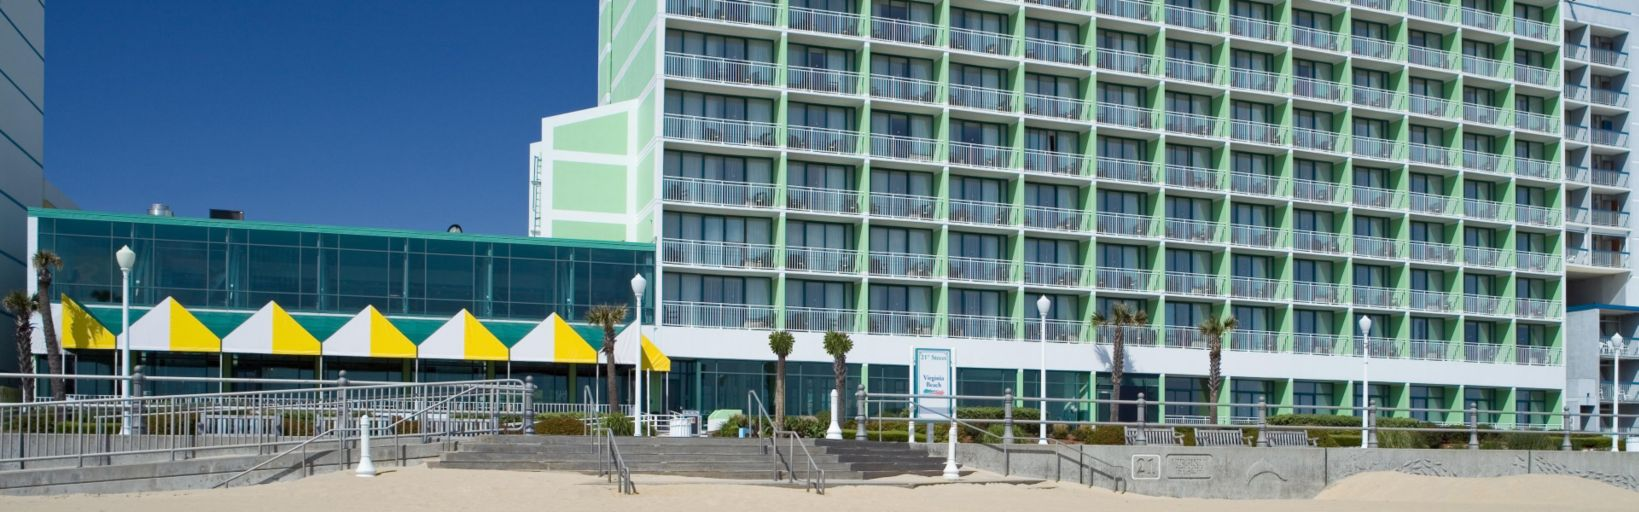 Beach View Welcome To The Holiday Inn Oceanside Breathtaking Views Of Atlantic Ocean Enjoy Virginia